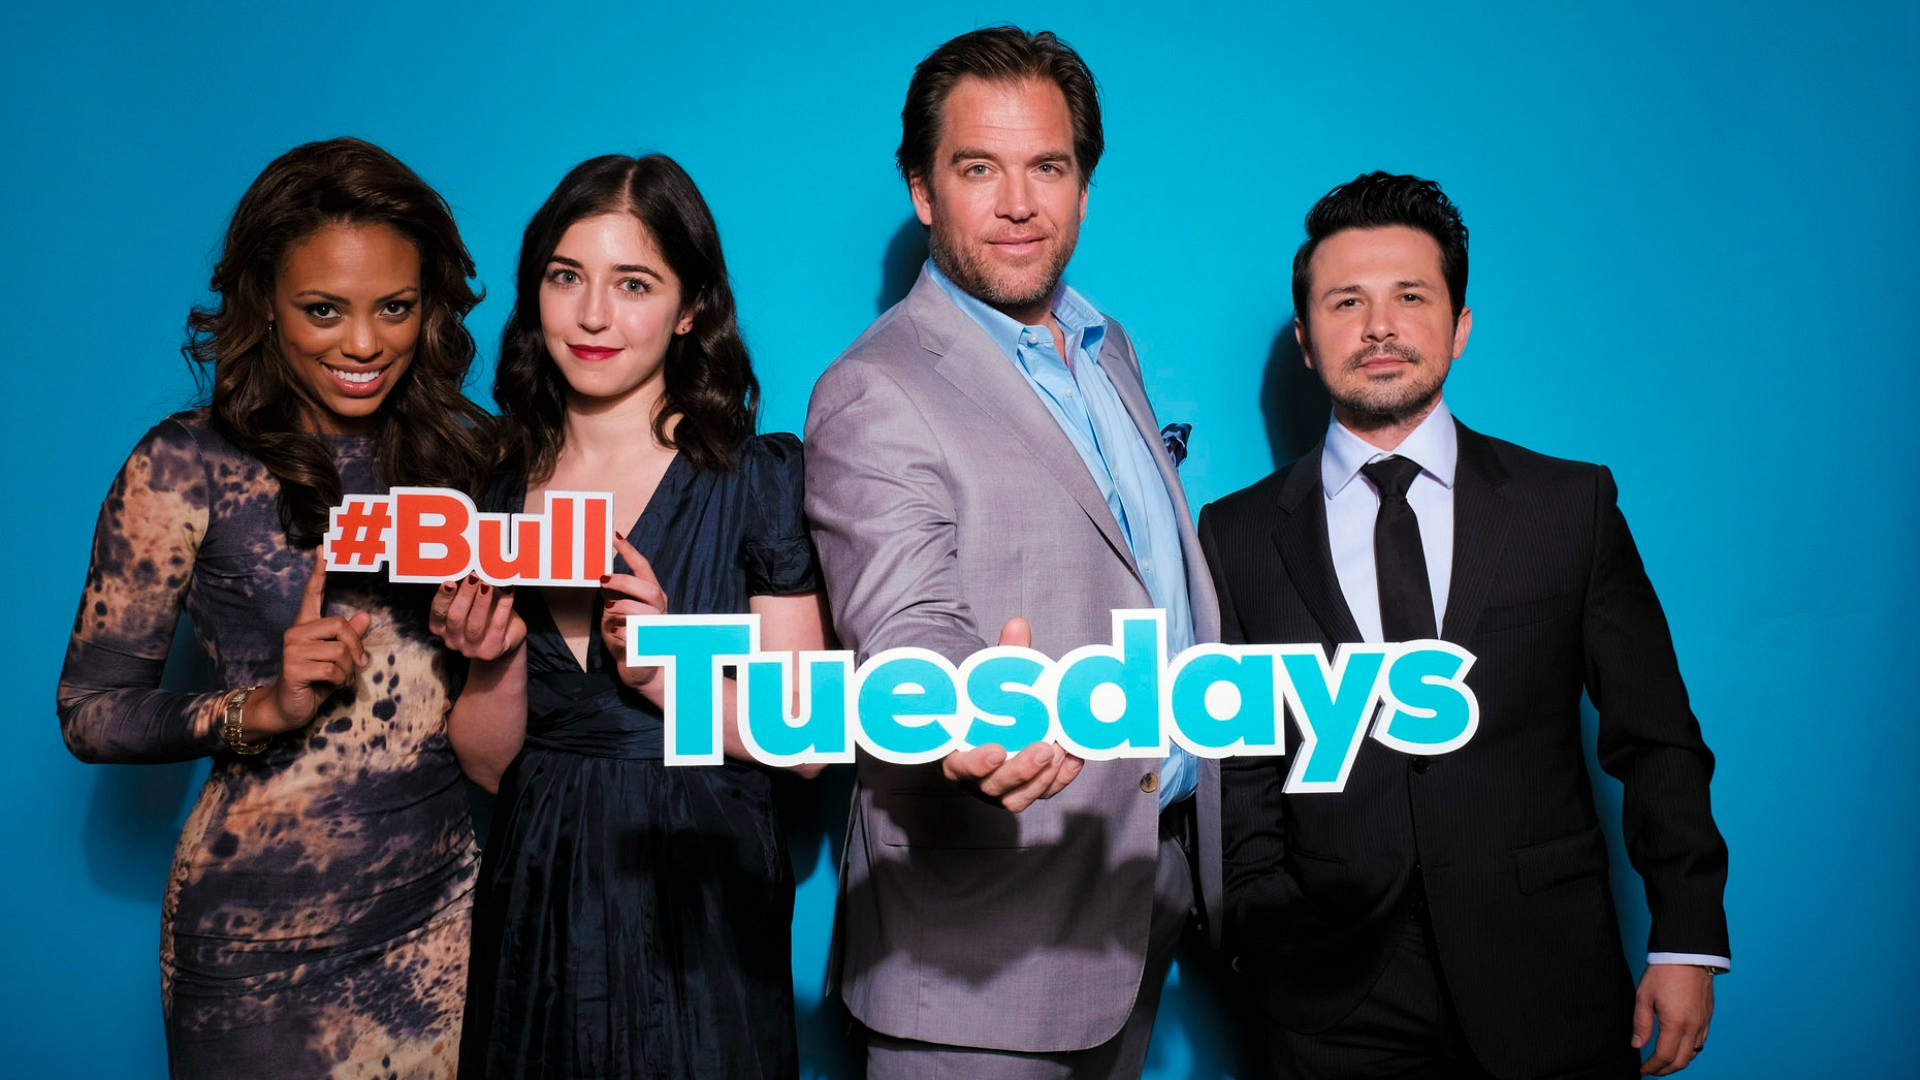 Jaime Lee Kirchner, Annabelle Attanasio, Michael Weatherly, and Freddy Rodríguez from Bull